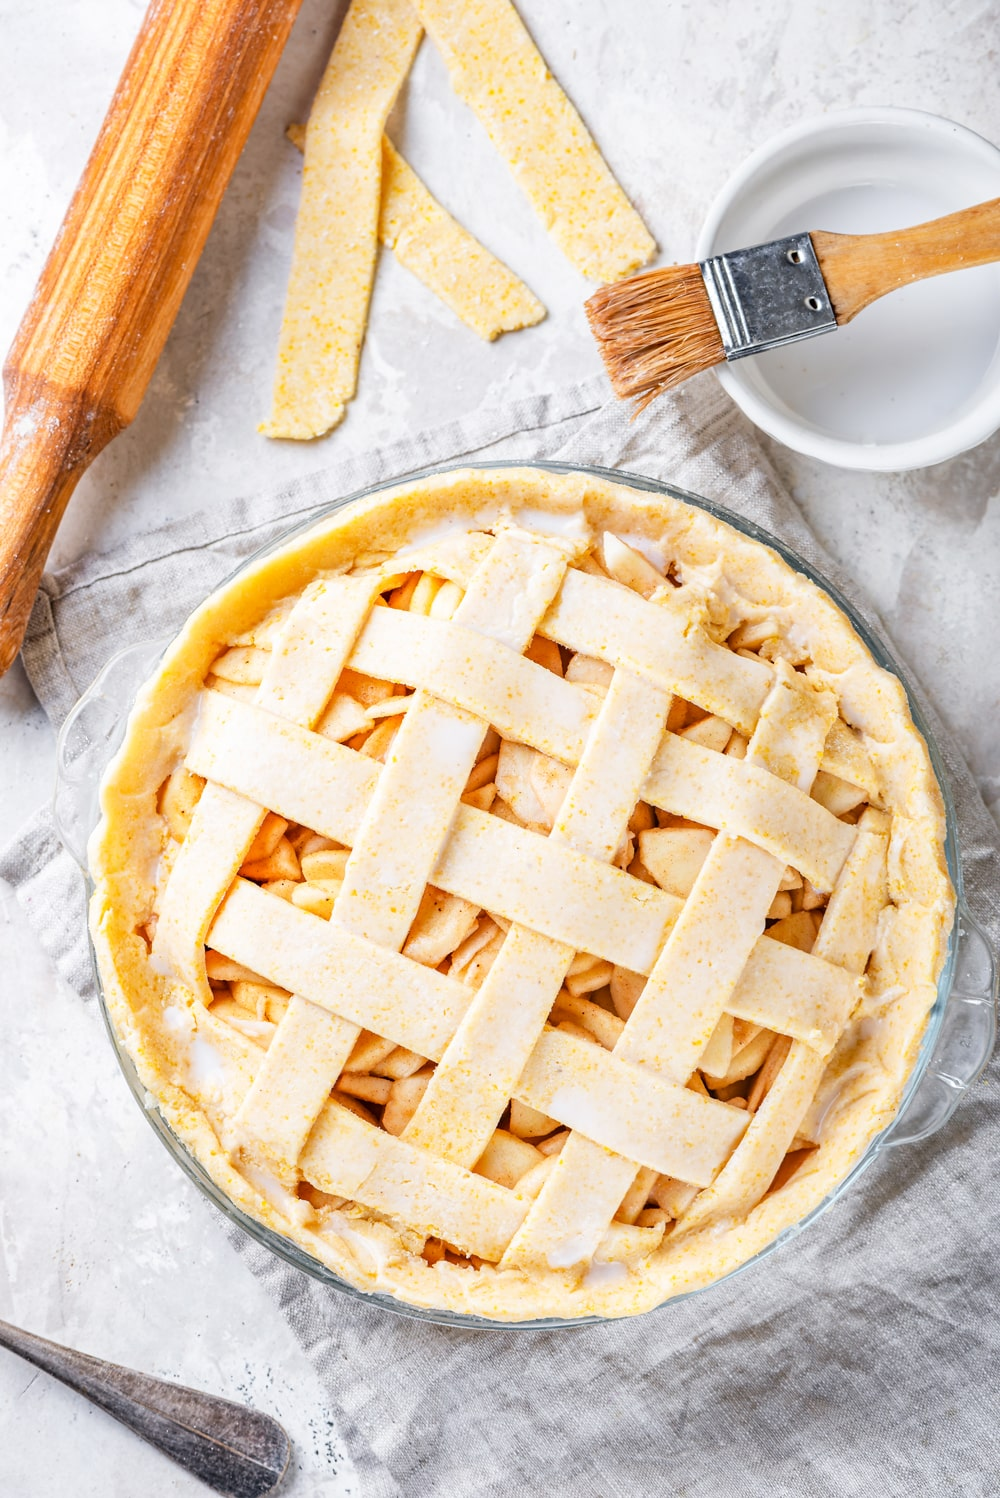 An overhead view of an uncooked vegan apple pie in a glass pie dish on a grey tablecloth. A rolling pin is behind the pie to the left and a brush on top of a small white bowl is to the right. All of these things are on a grey counter.